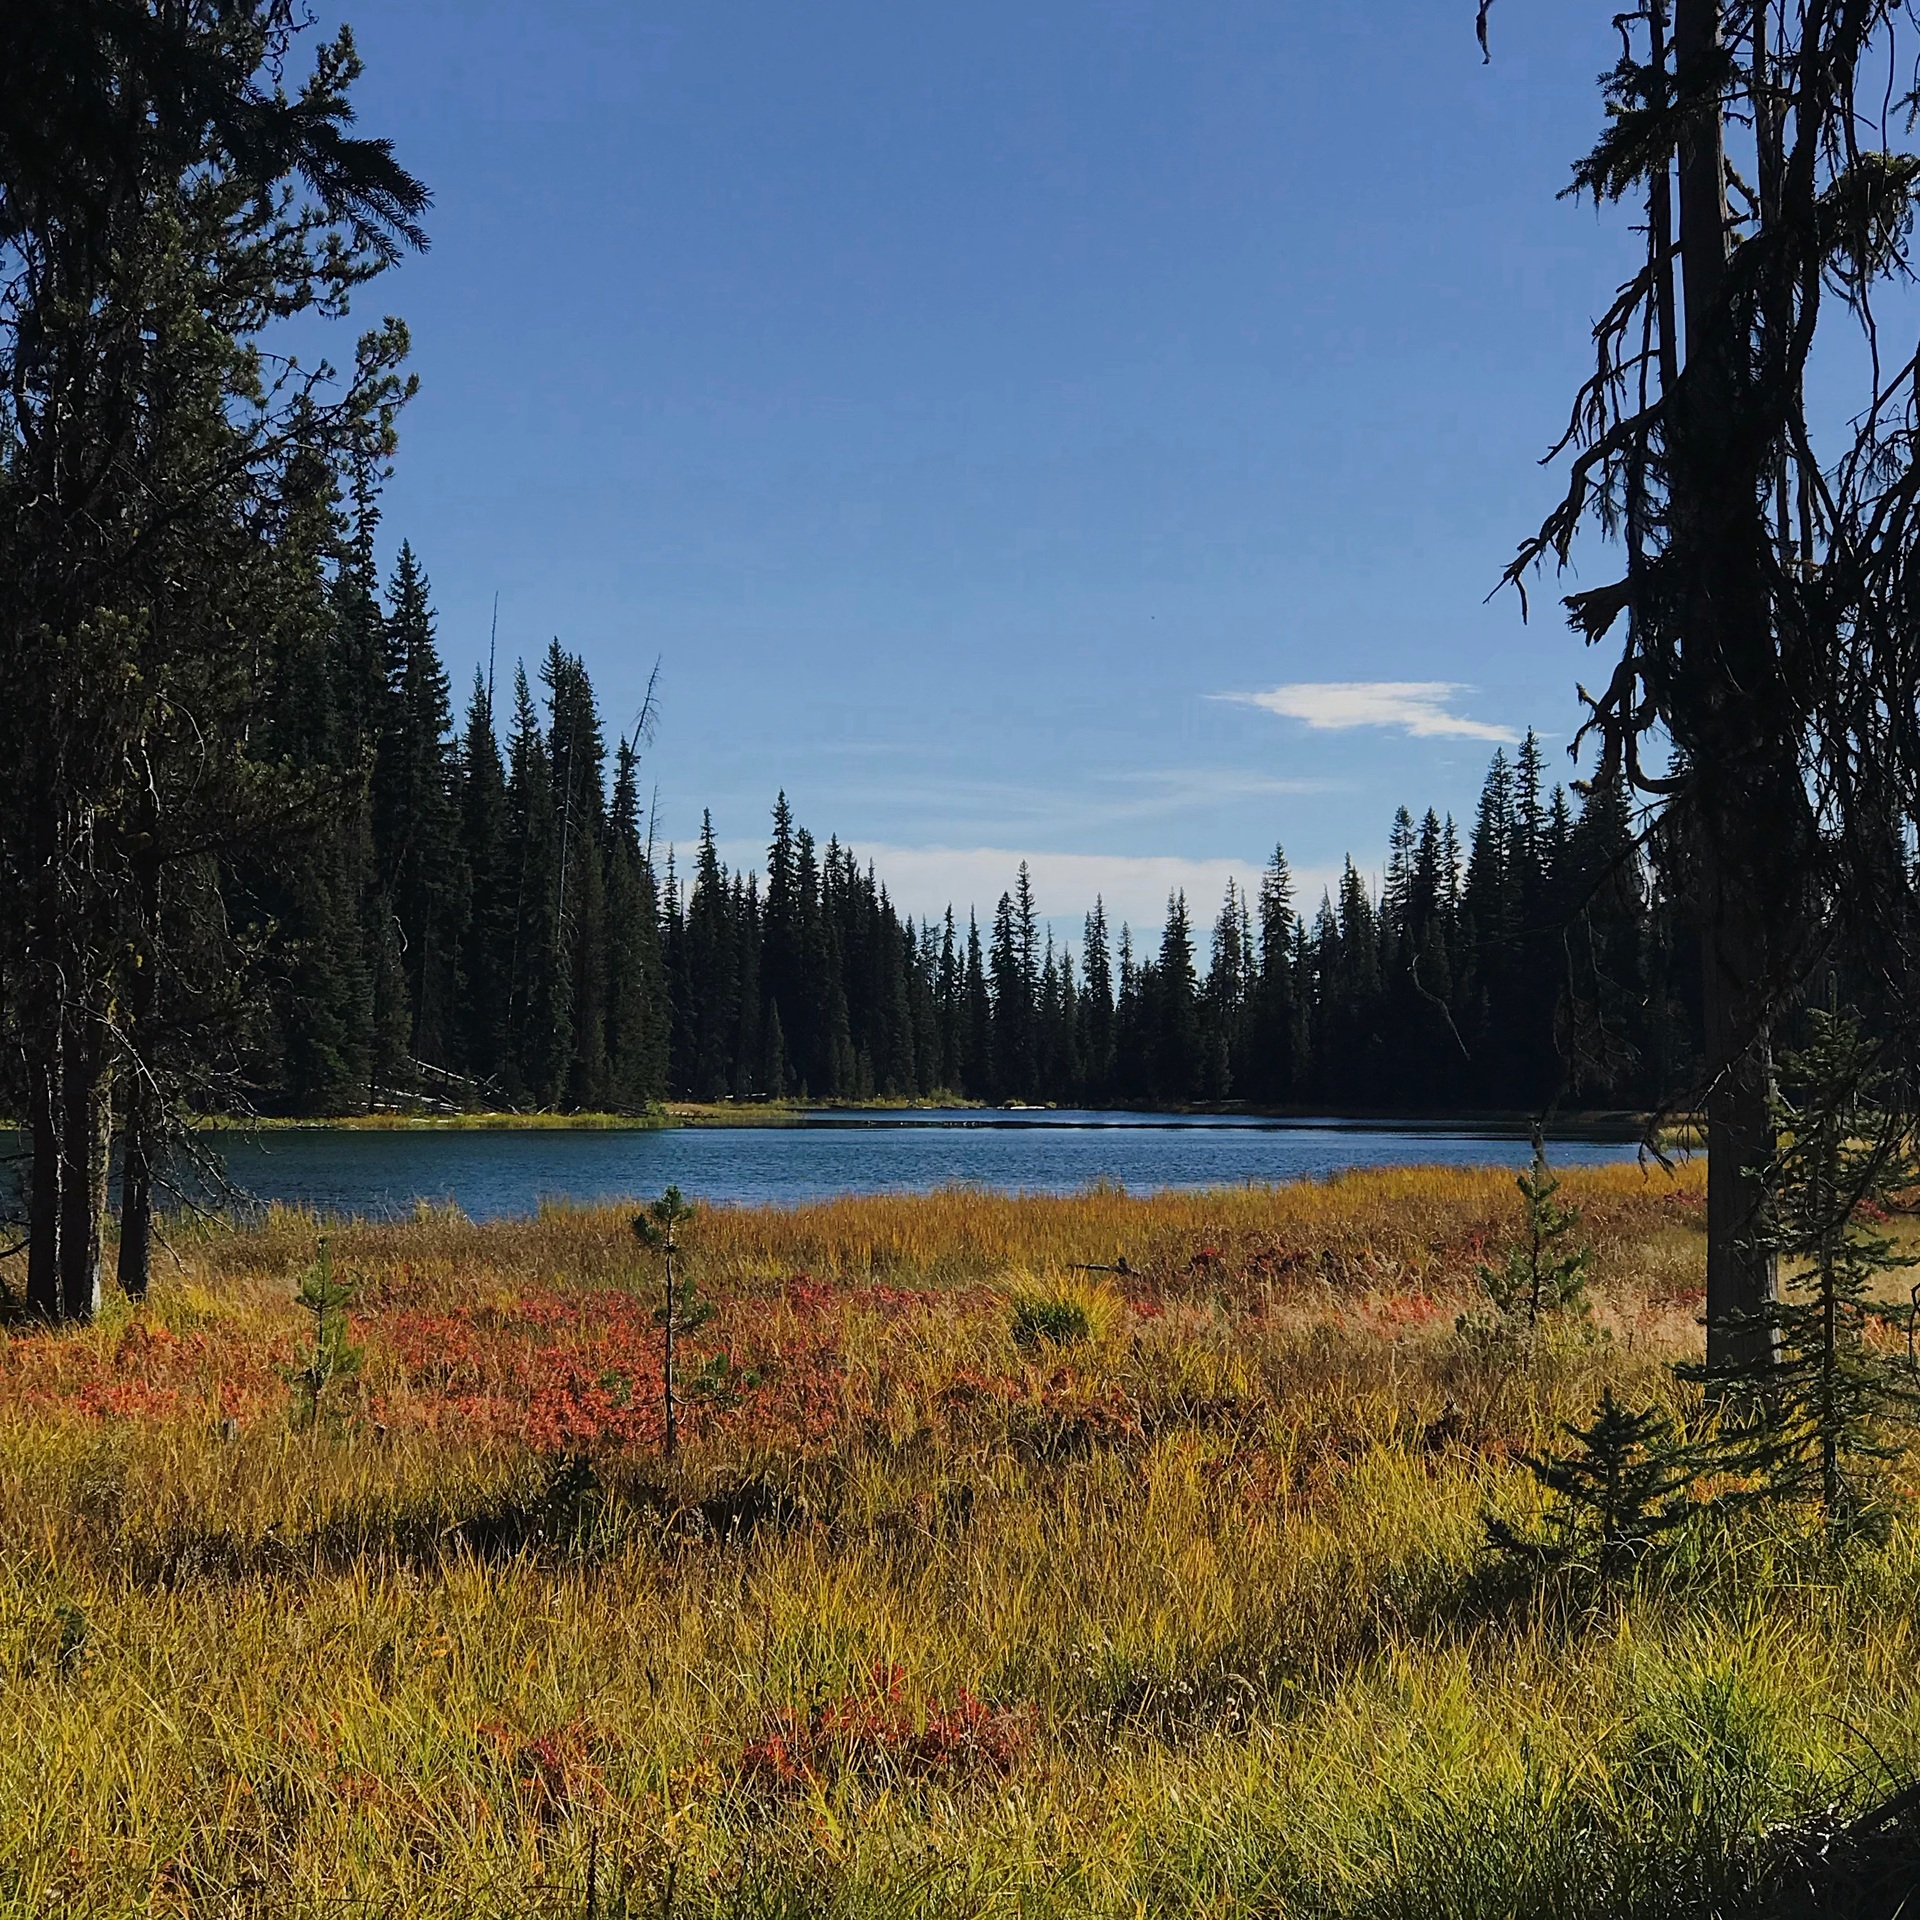 The Deschutes River flows through the forest out of Blue Hole near its headwaters with a meadow filled with fall colors in the foreground on a beautiful fall day.